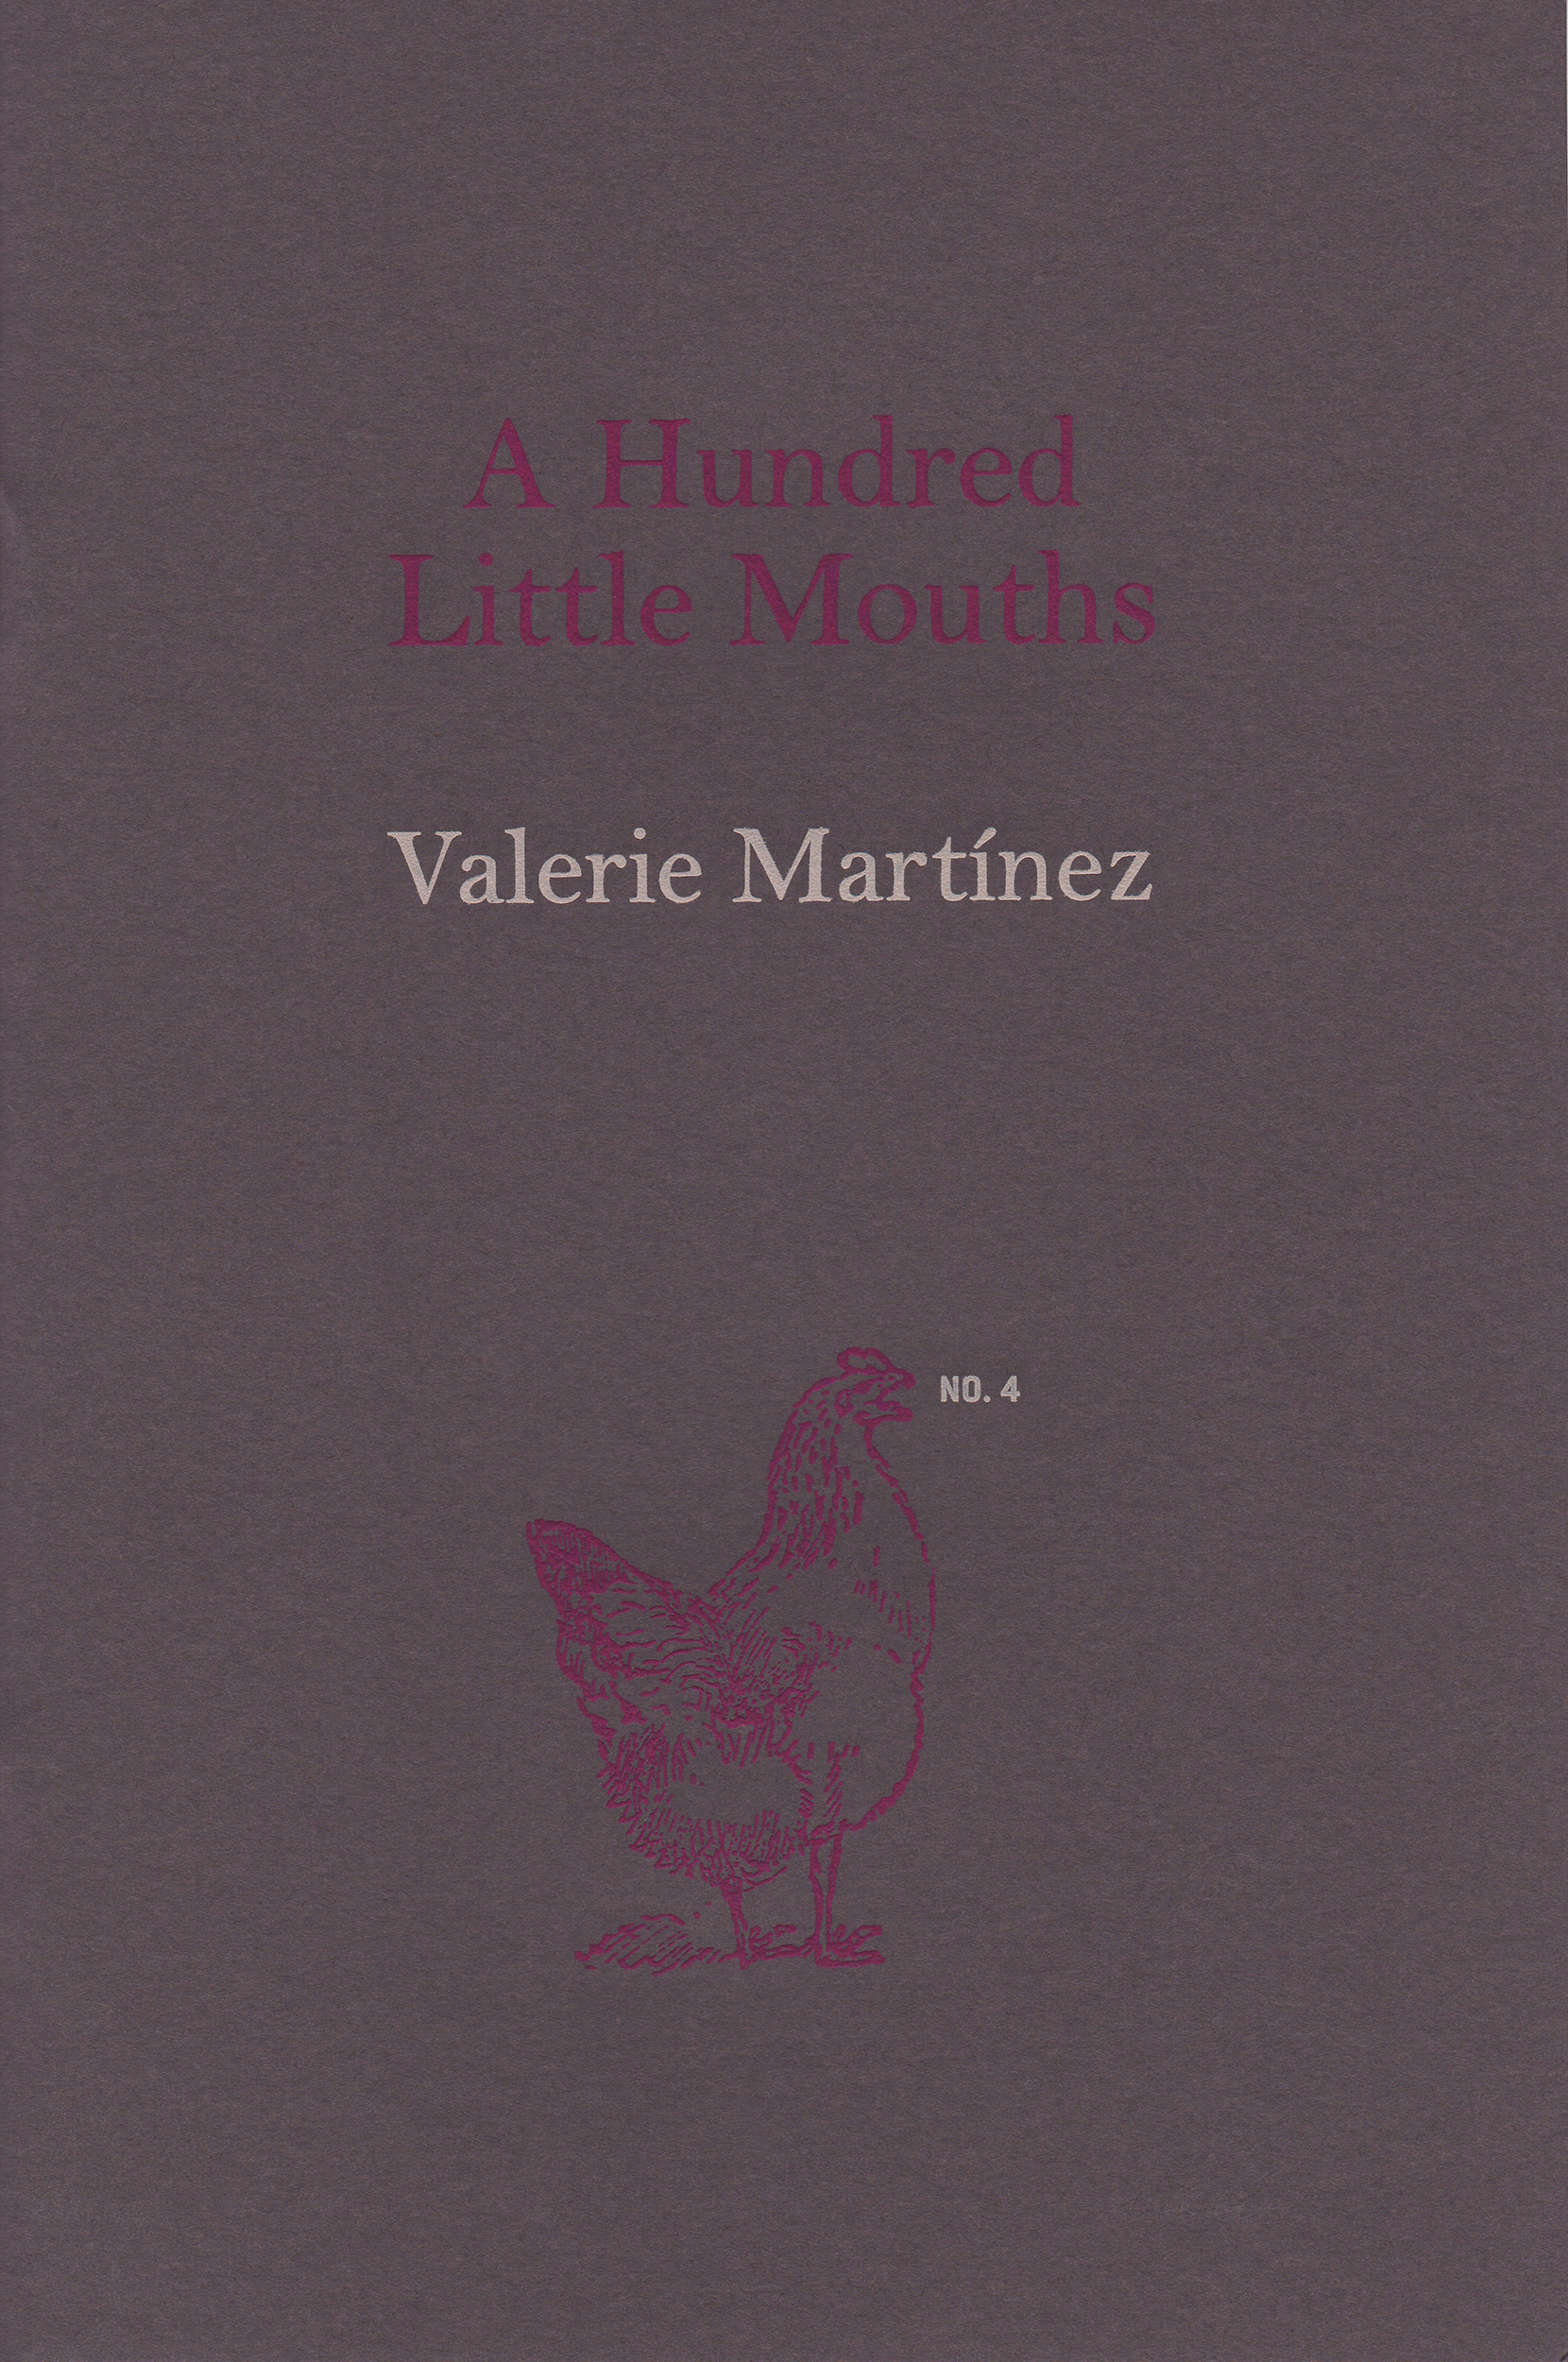 A Hundred Little Mouths  by Valerie Martínez, 2015 Offset lithography, engraved cover, 6.75 x 4.5 inches, 28 pages. Edition of 300 Designed by Susan Silton $35